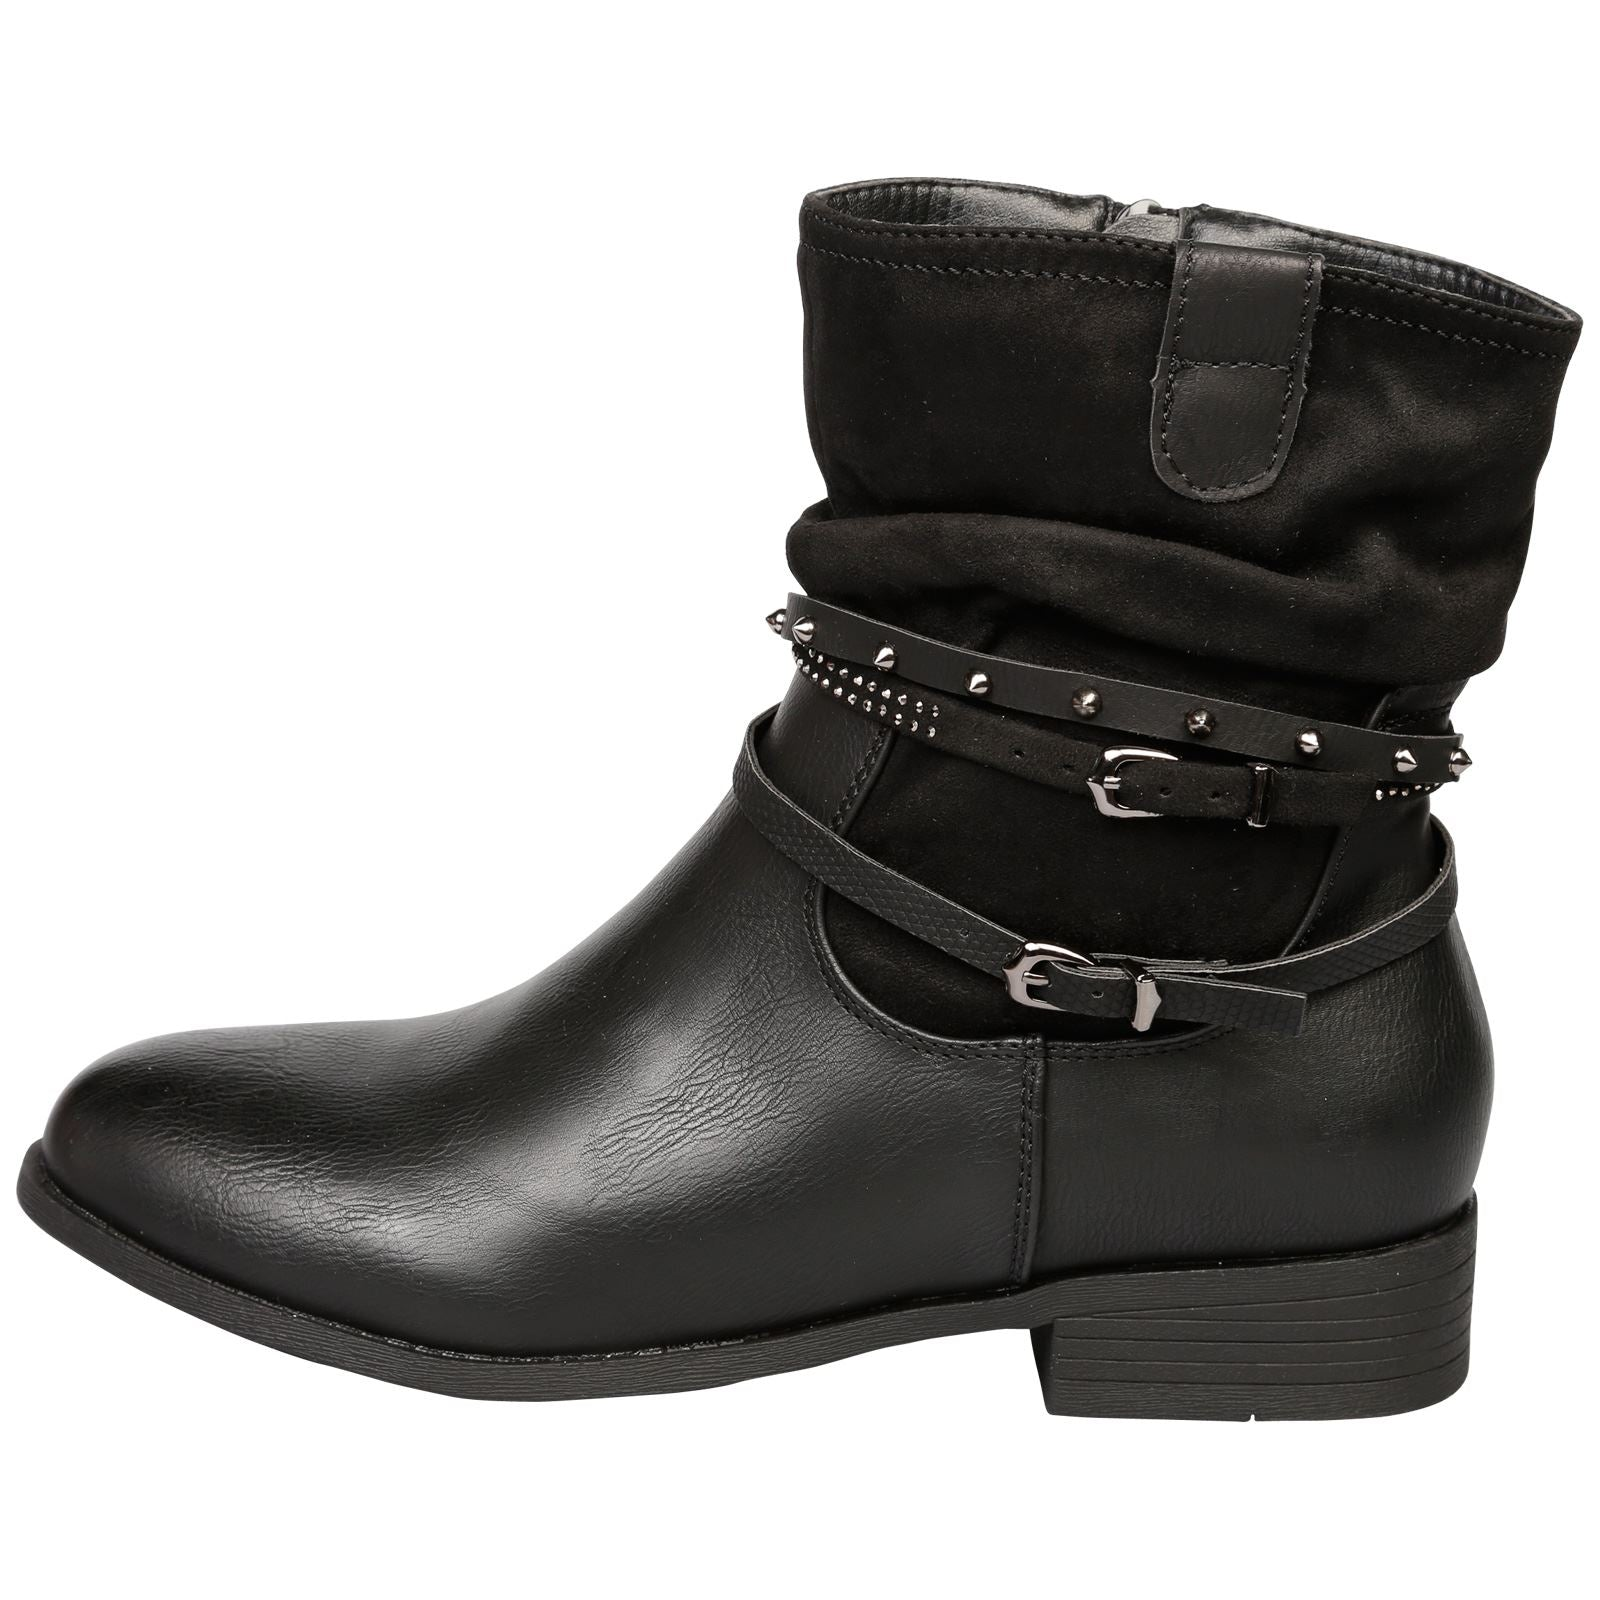 Dream Strappy Ankle Boots in Black - Feet First Fashion